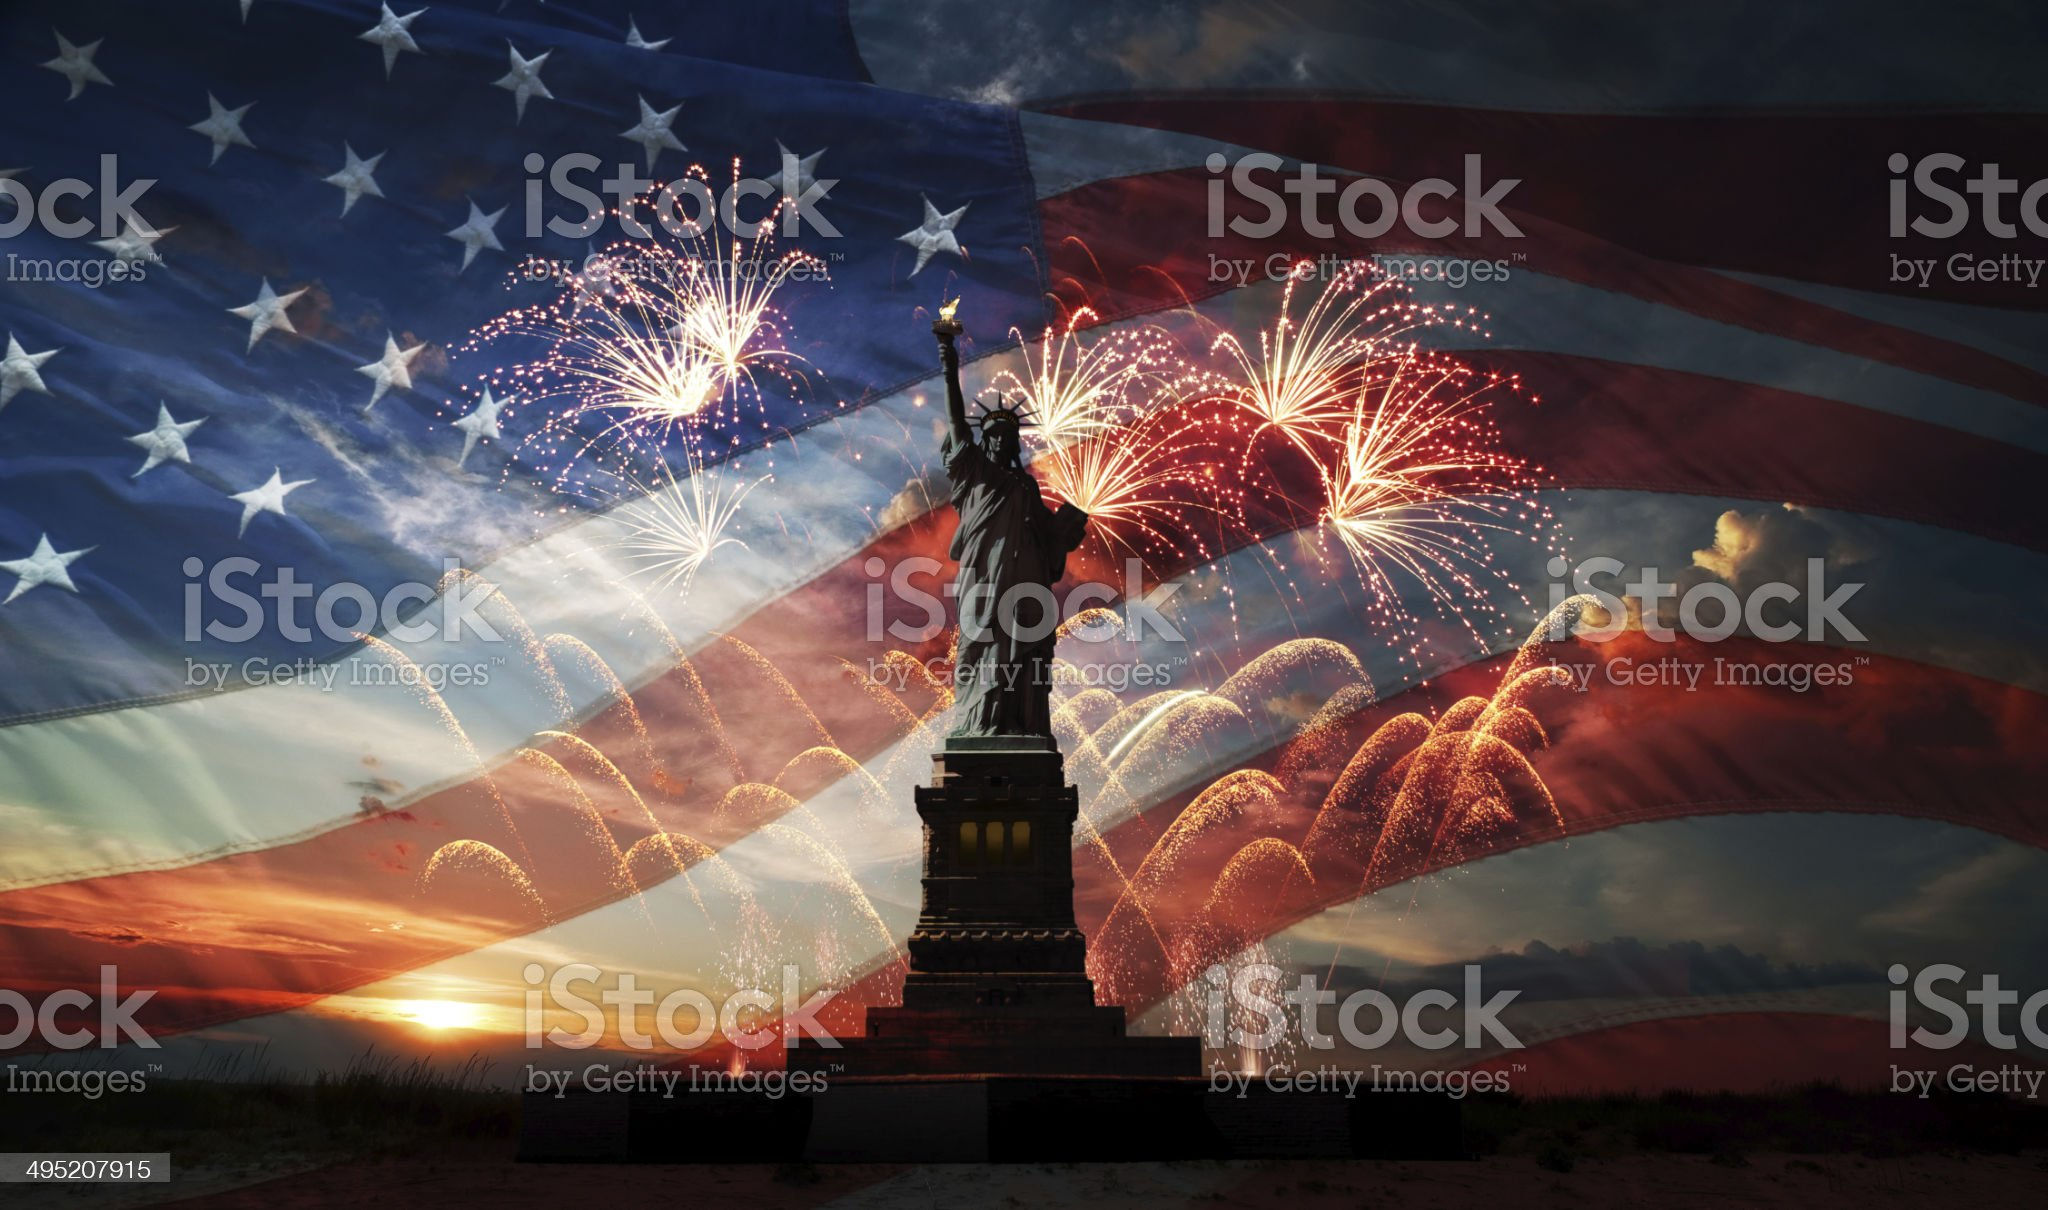 Independence day. Liberty enlightening the world royalty-free stock photo